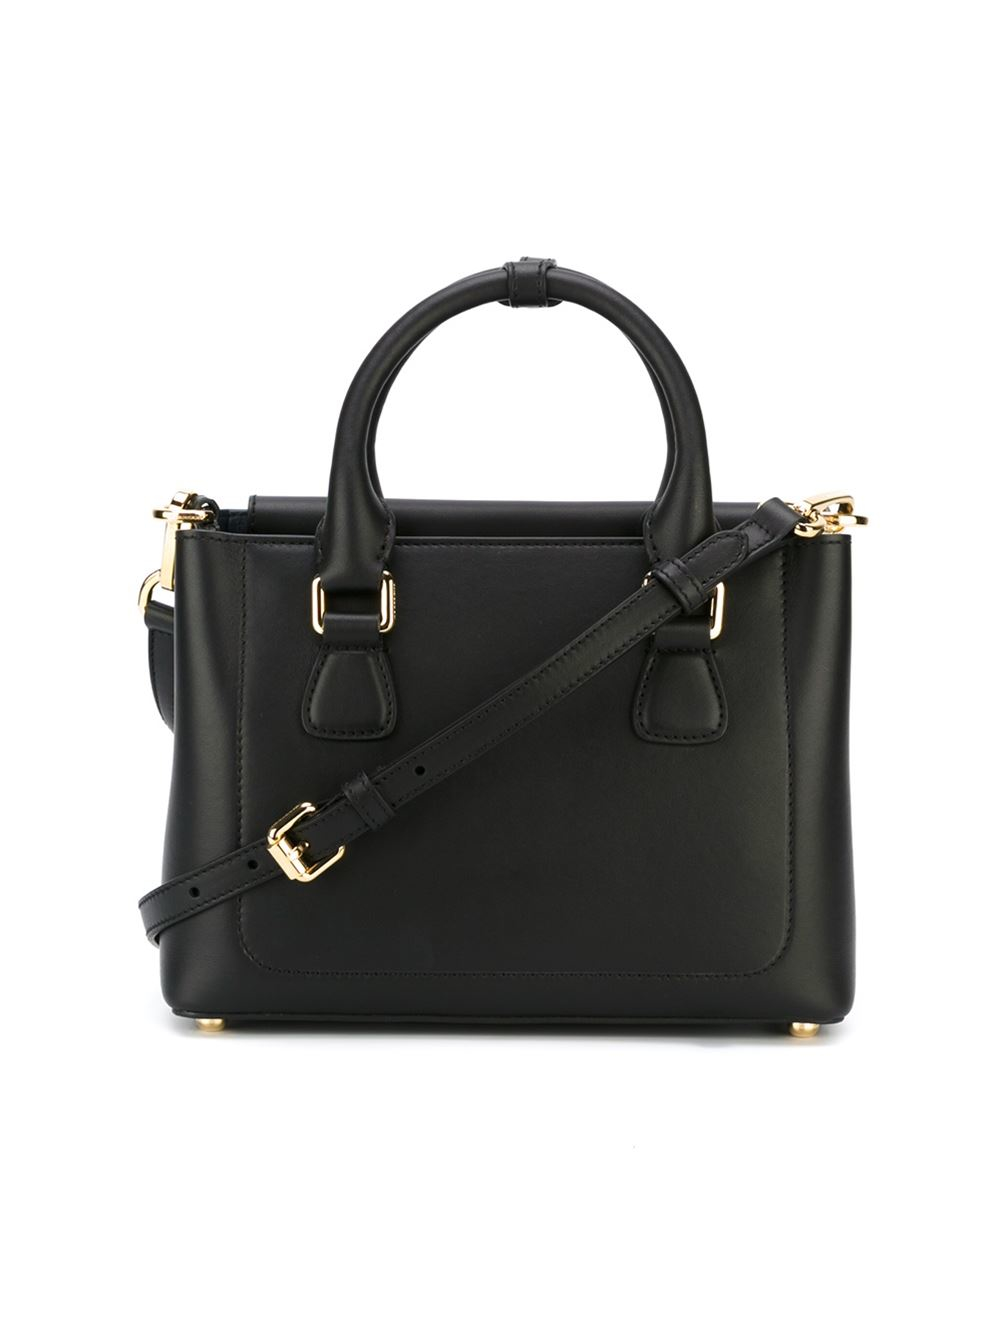 Burberry Small Saddle Tote in Black